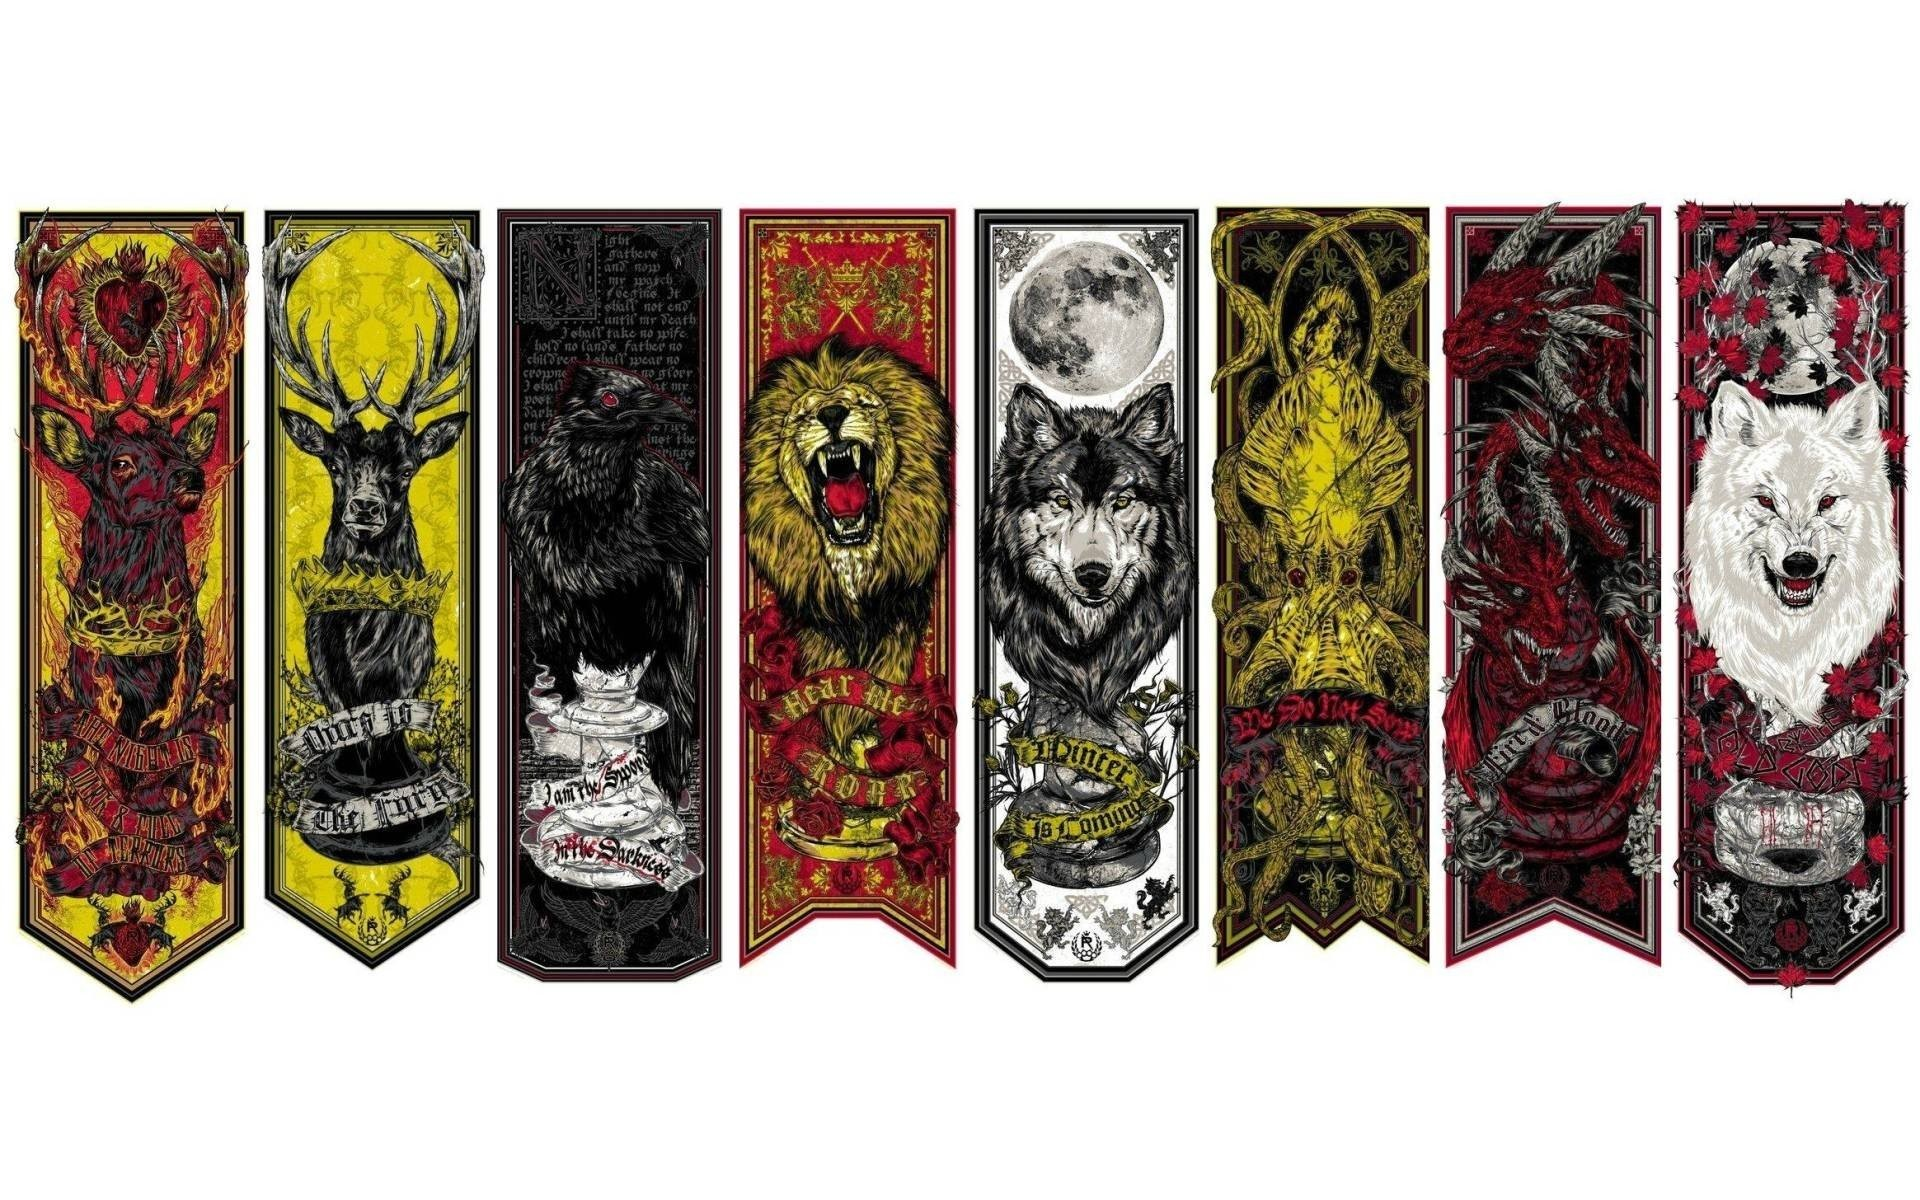 Game of Thrones house crests wallpaper, Game of Thrones house crests TV  Show HD desktop wallpaper